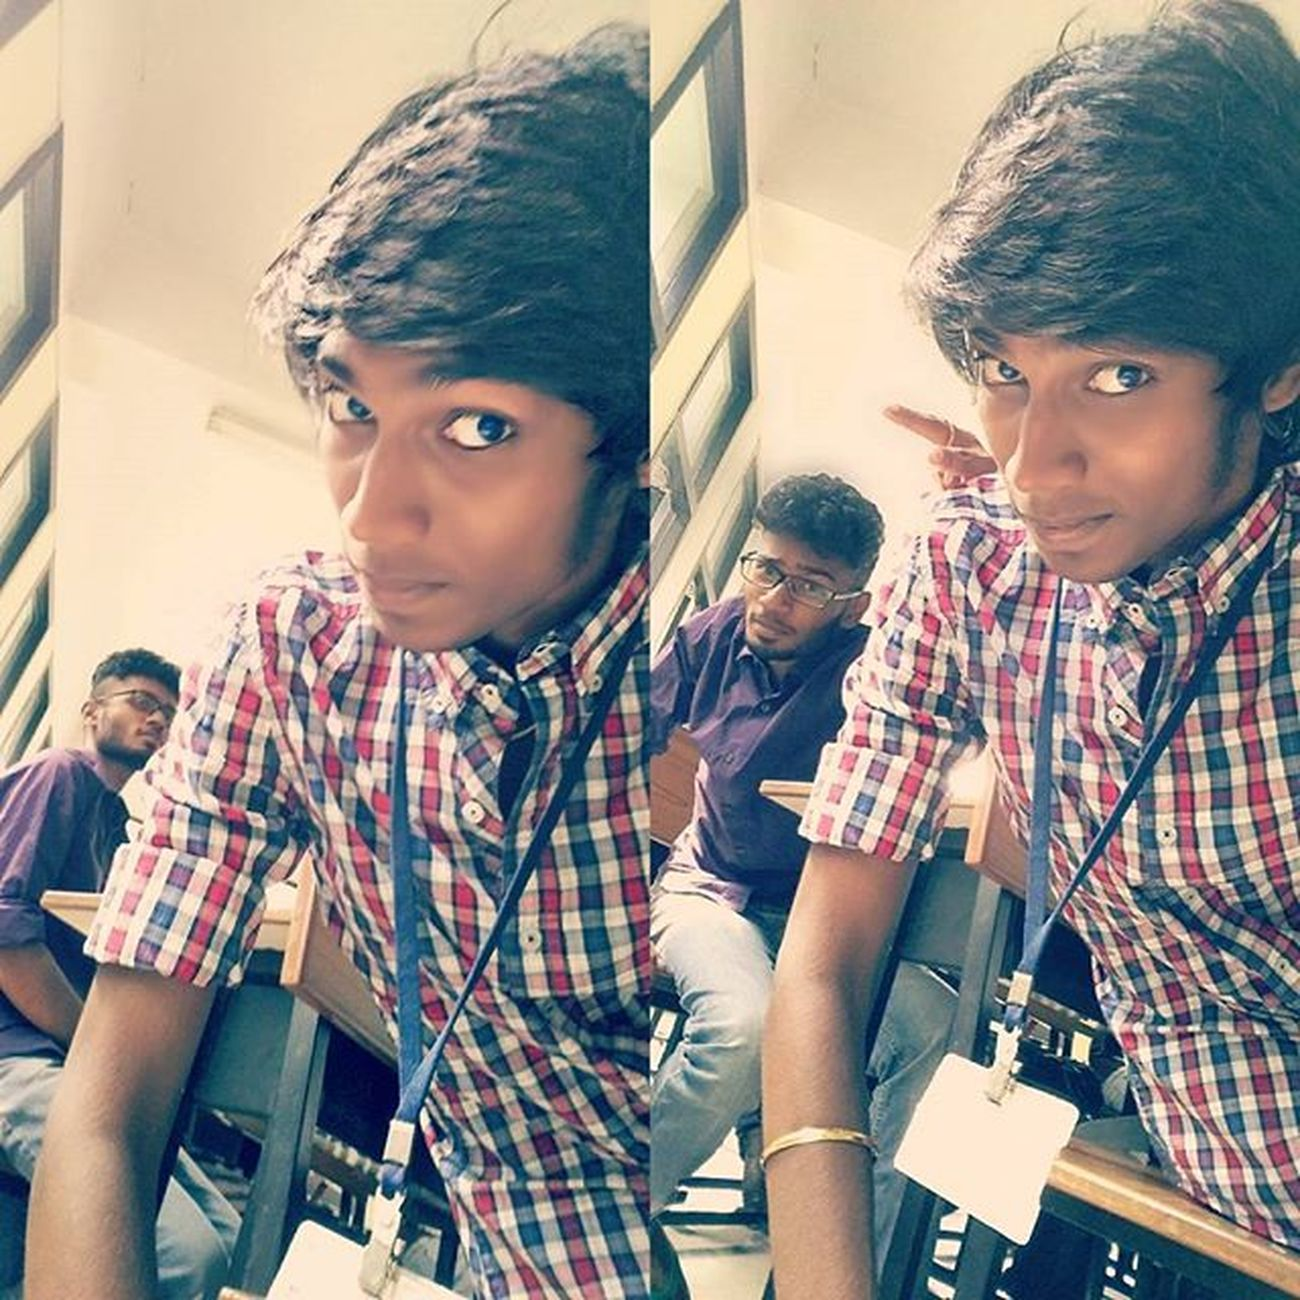 College Lifestyle Bored Class Selfie Time Instaevening Love Friends Fun Smartphone Smartclass Future engineersVIPS